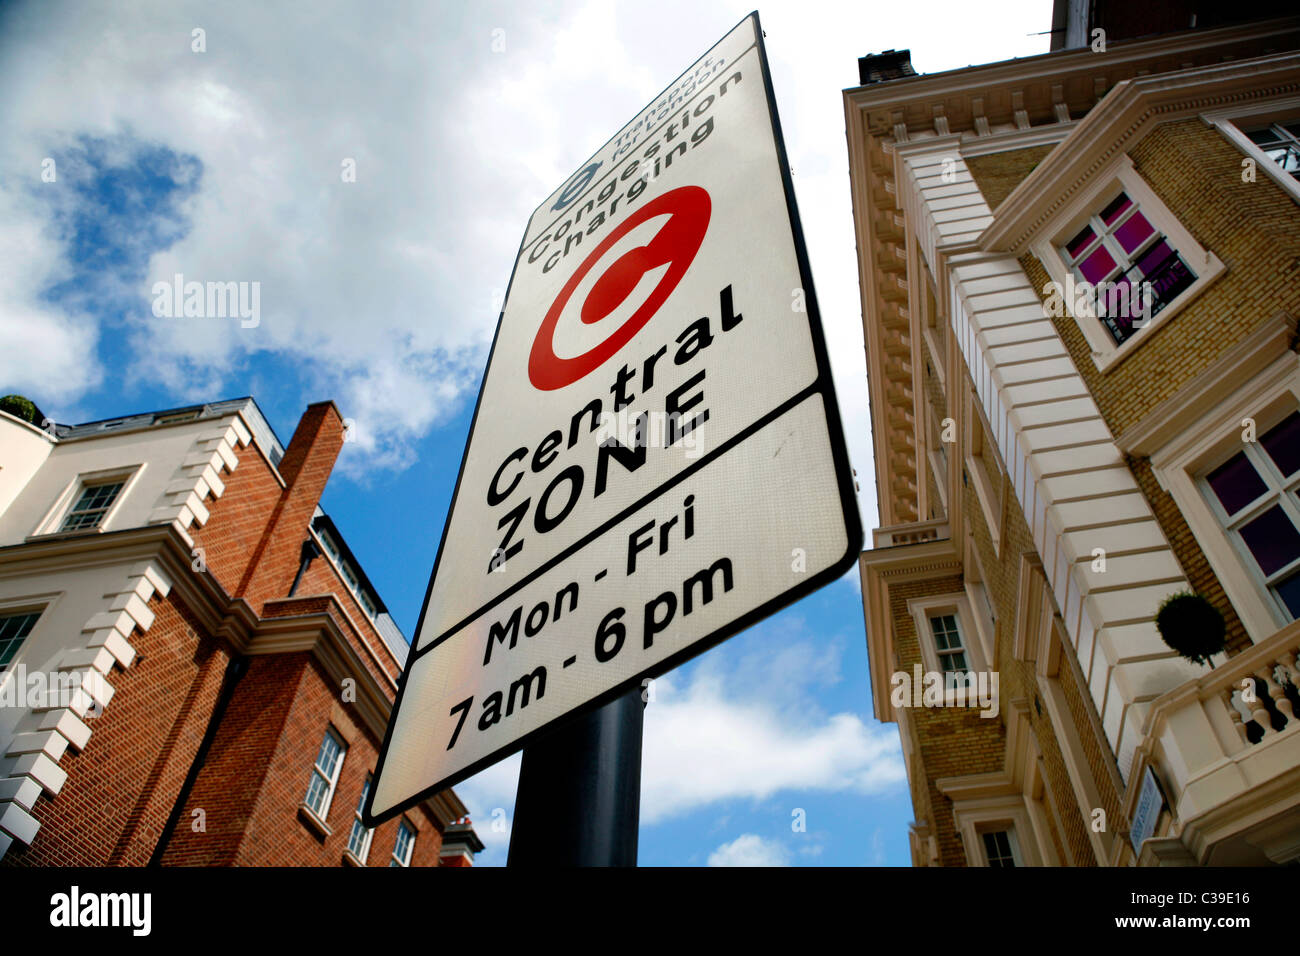 A Congestion Zone sign in Westminster, London - Stock Image